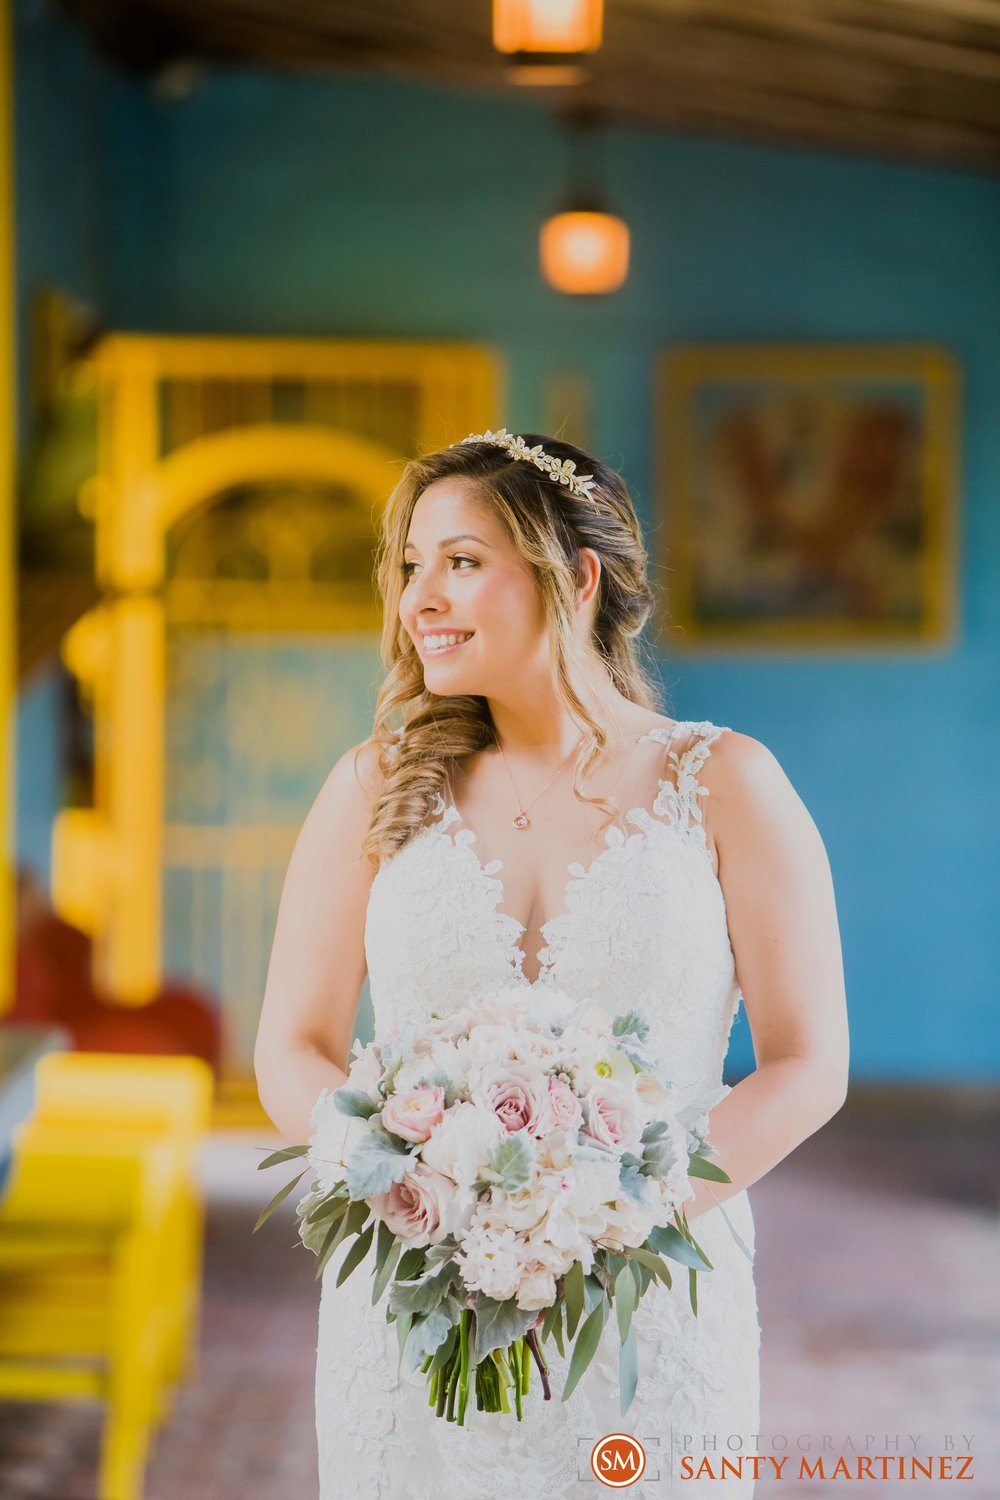 Wedding Bonnet House - Santy Martinez Photography-21.jpg